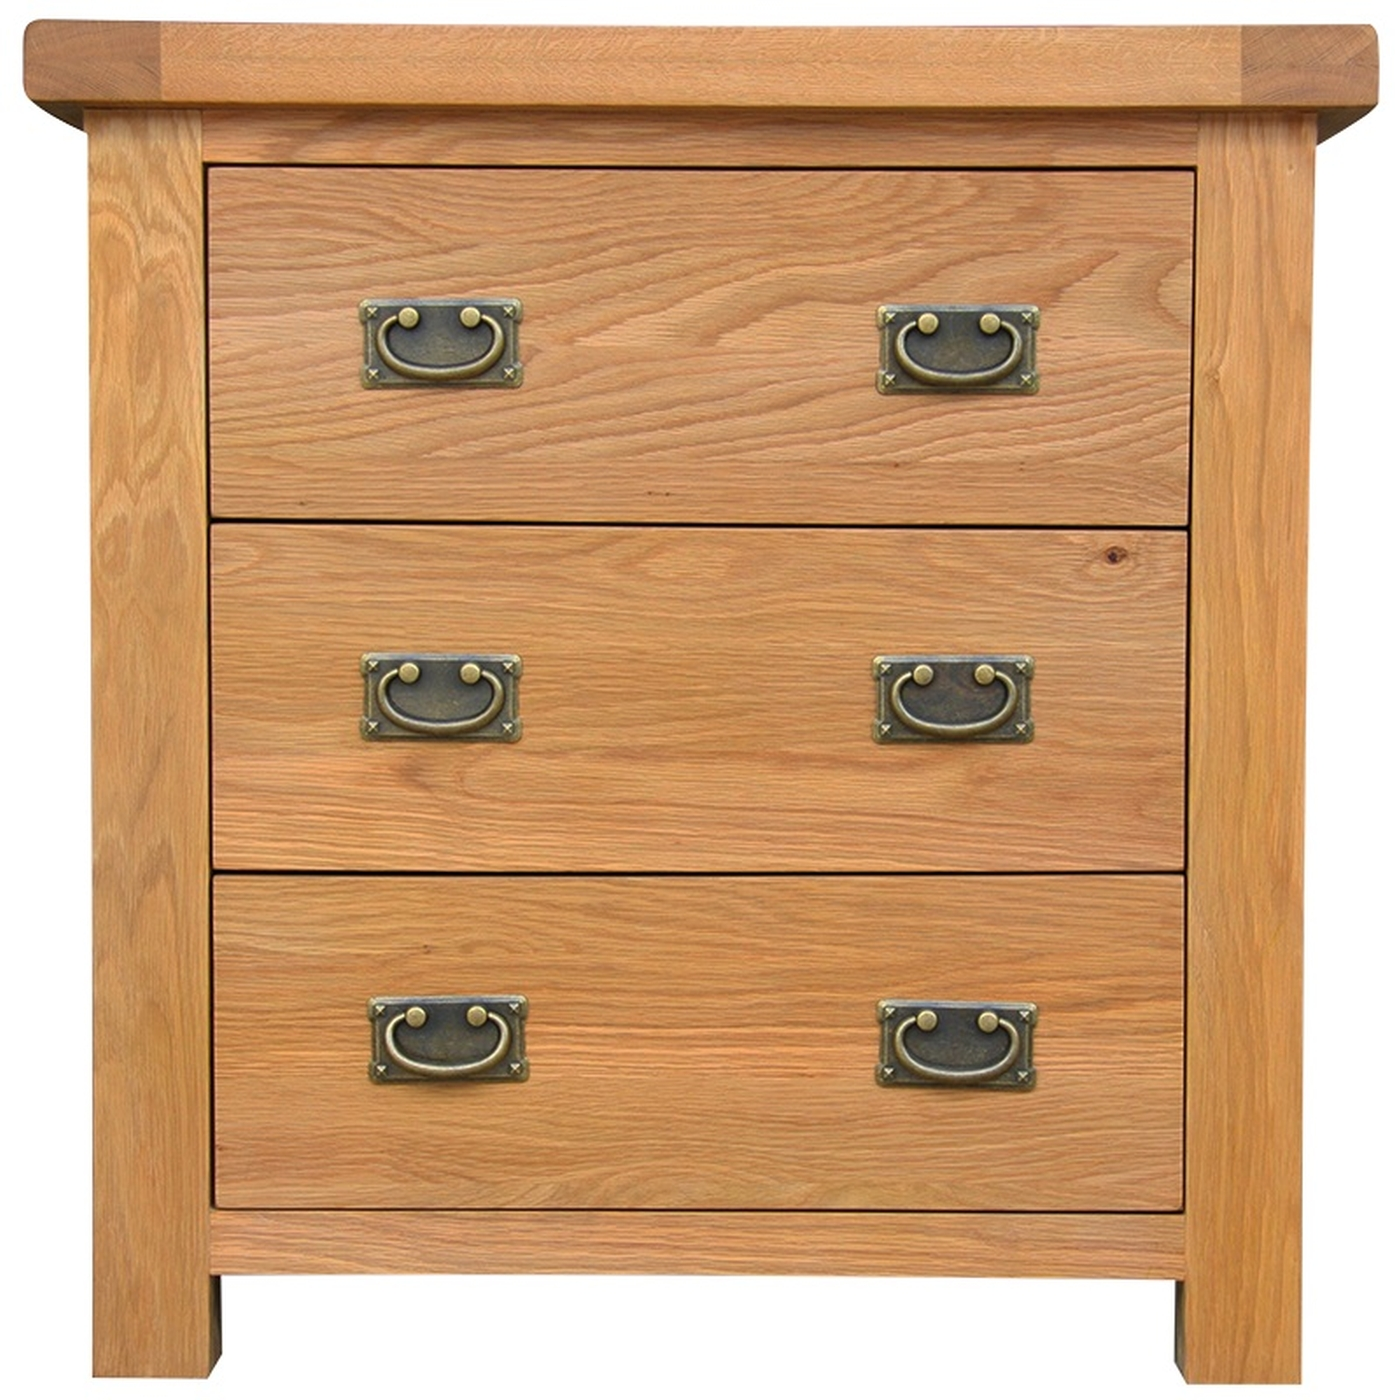 Ribble solid oak furniture small bedroom chest of drawers for Bedroom furniture chest of drawers